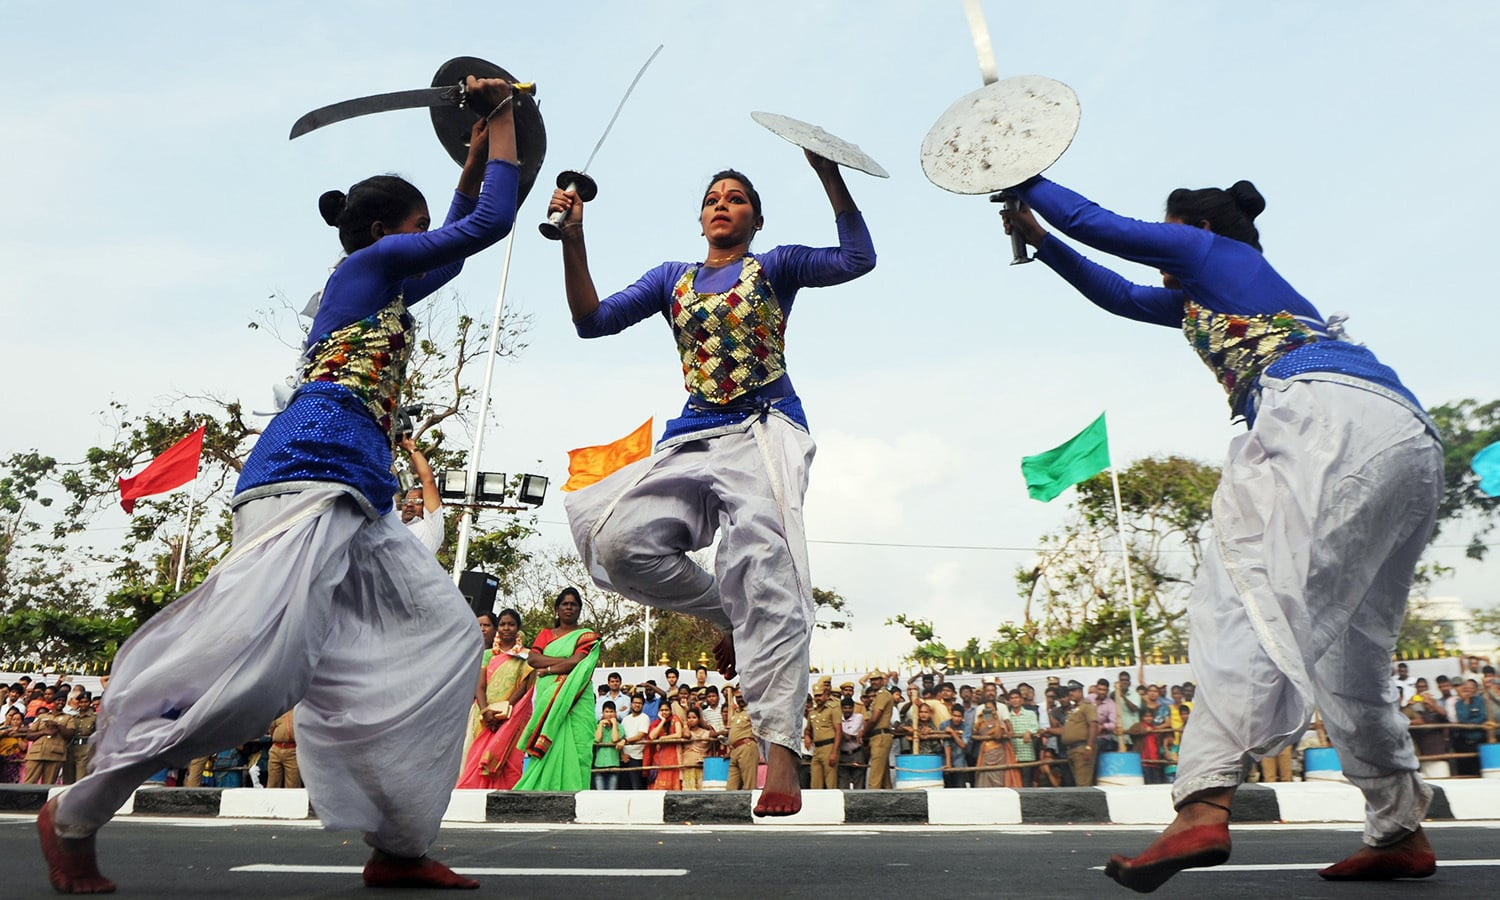 Indian school students displays 'kalaripayittu', an ancient martial art, during a parade to mark Republic Day in Chennai.— AFP